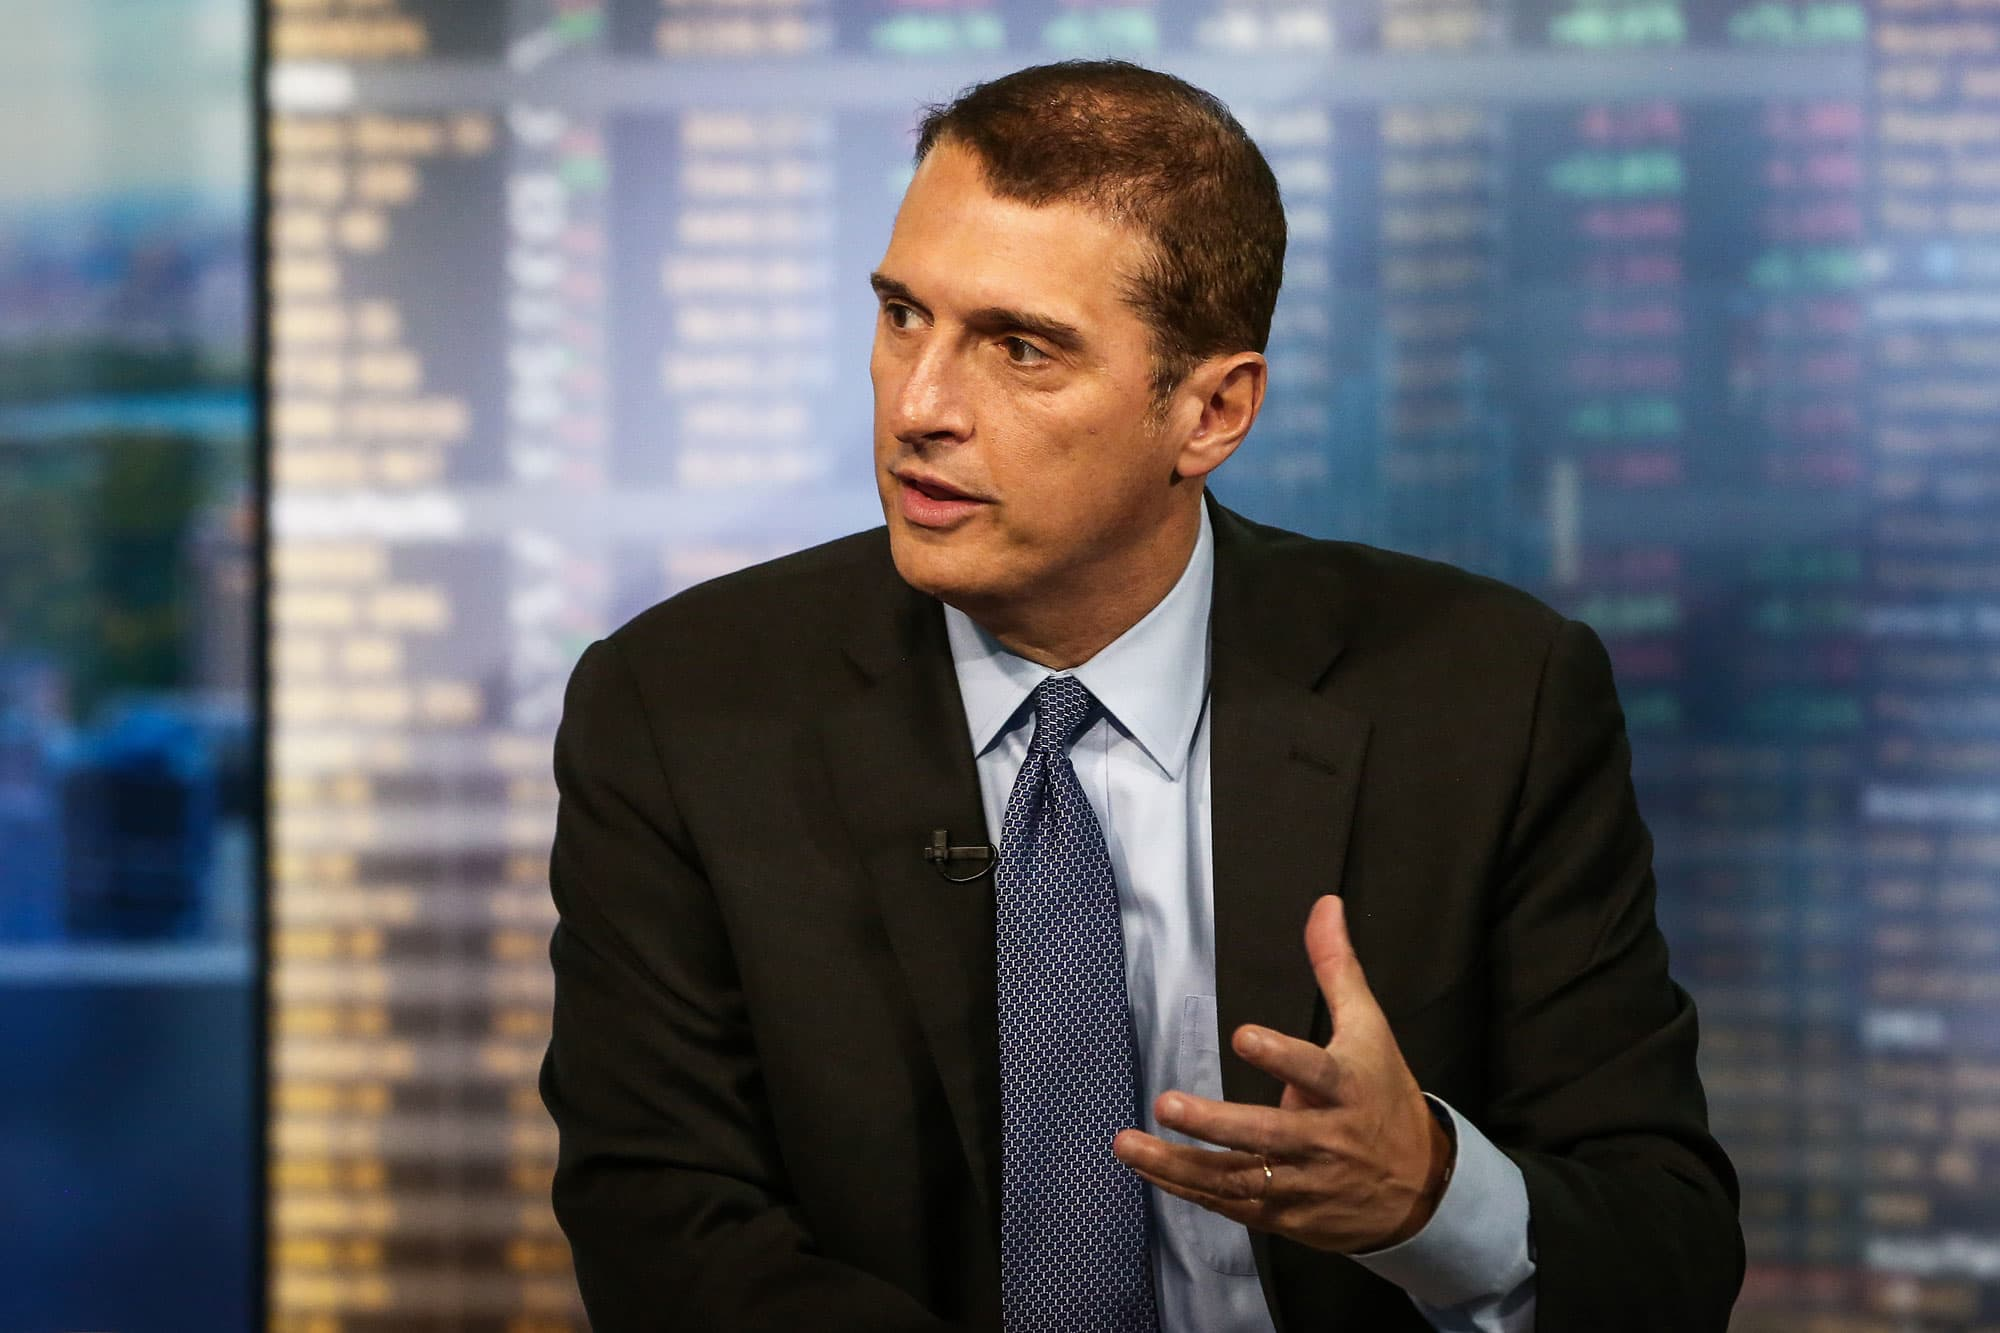 Investors will get relief from falling Treasury yields: Jim Bianco